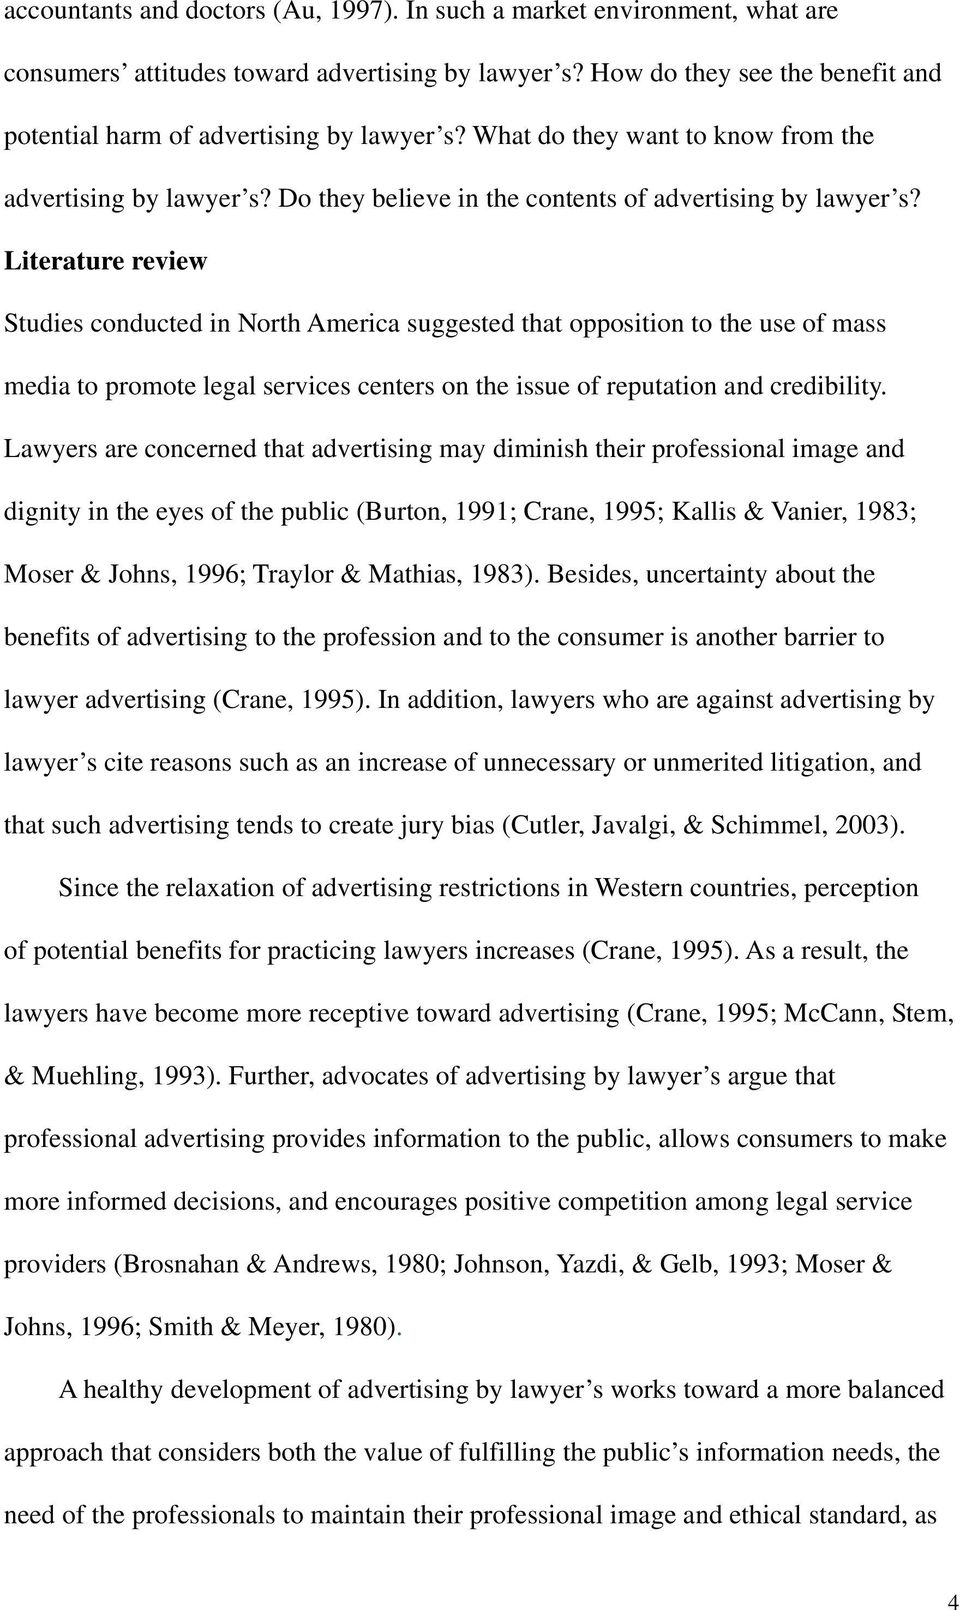 Literature review Studies conducted in North America suggested that opposition to the use of mass media to promote legal services centers on the issue of reputation and credibility.